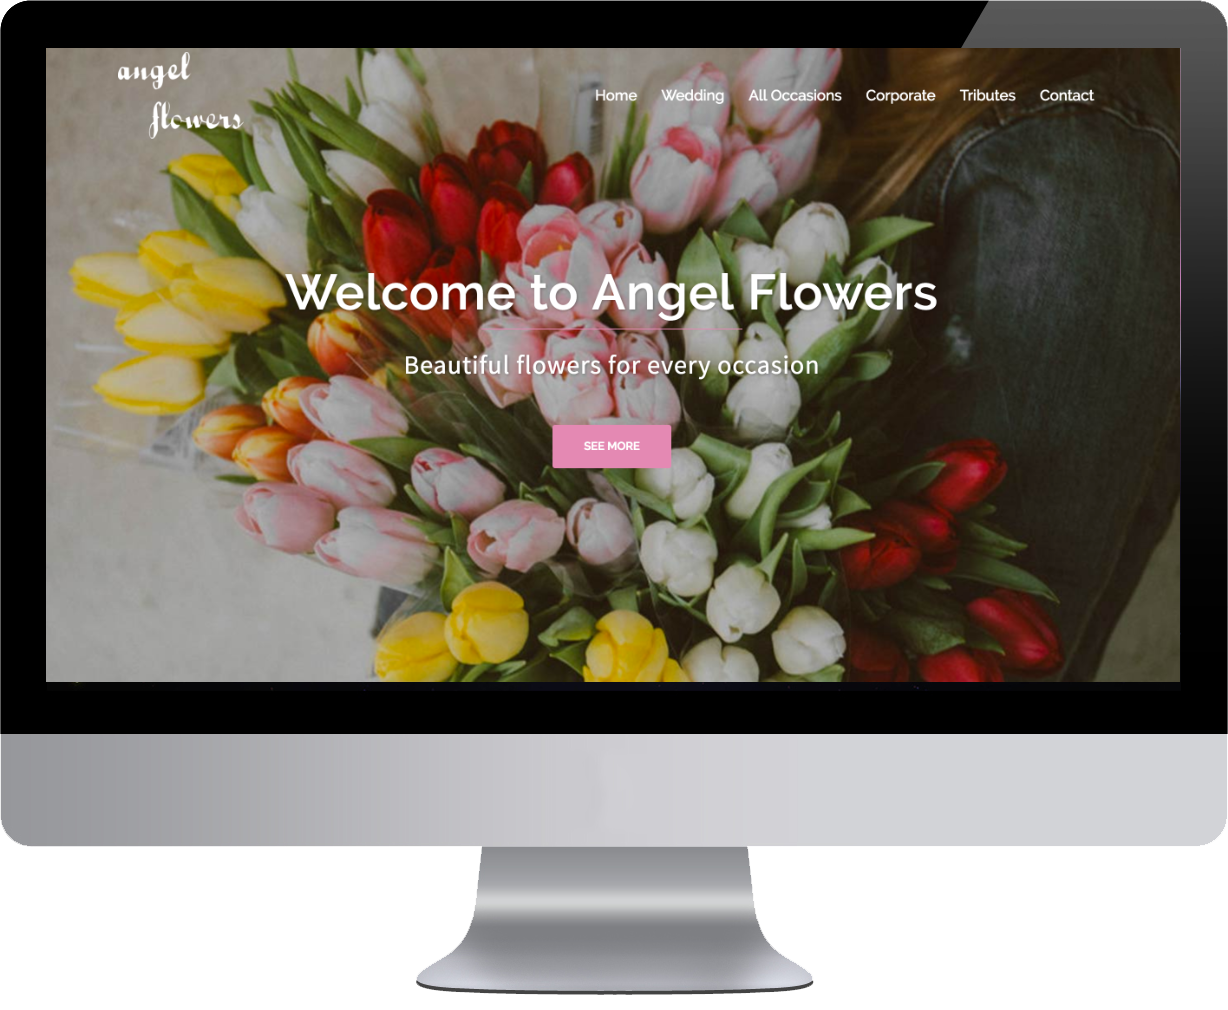 angel flowers website design by clare web design gillian kelly